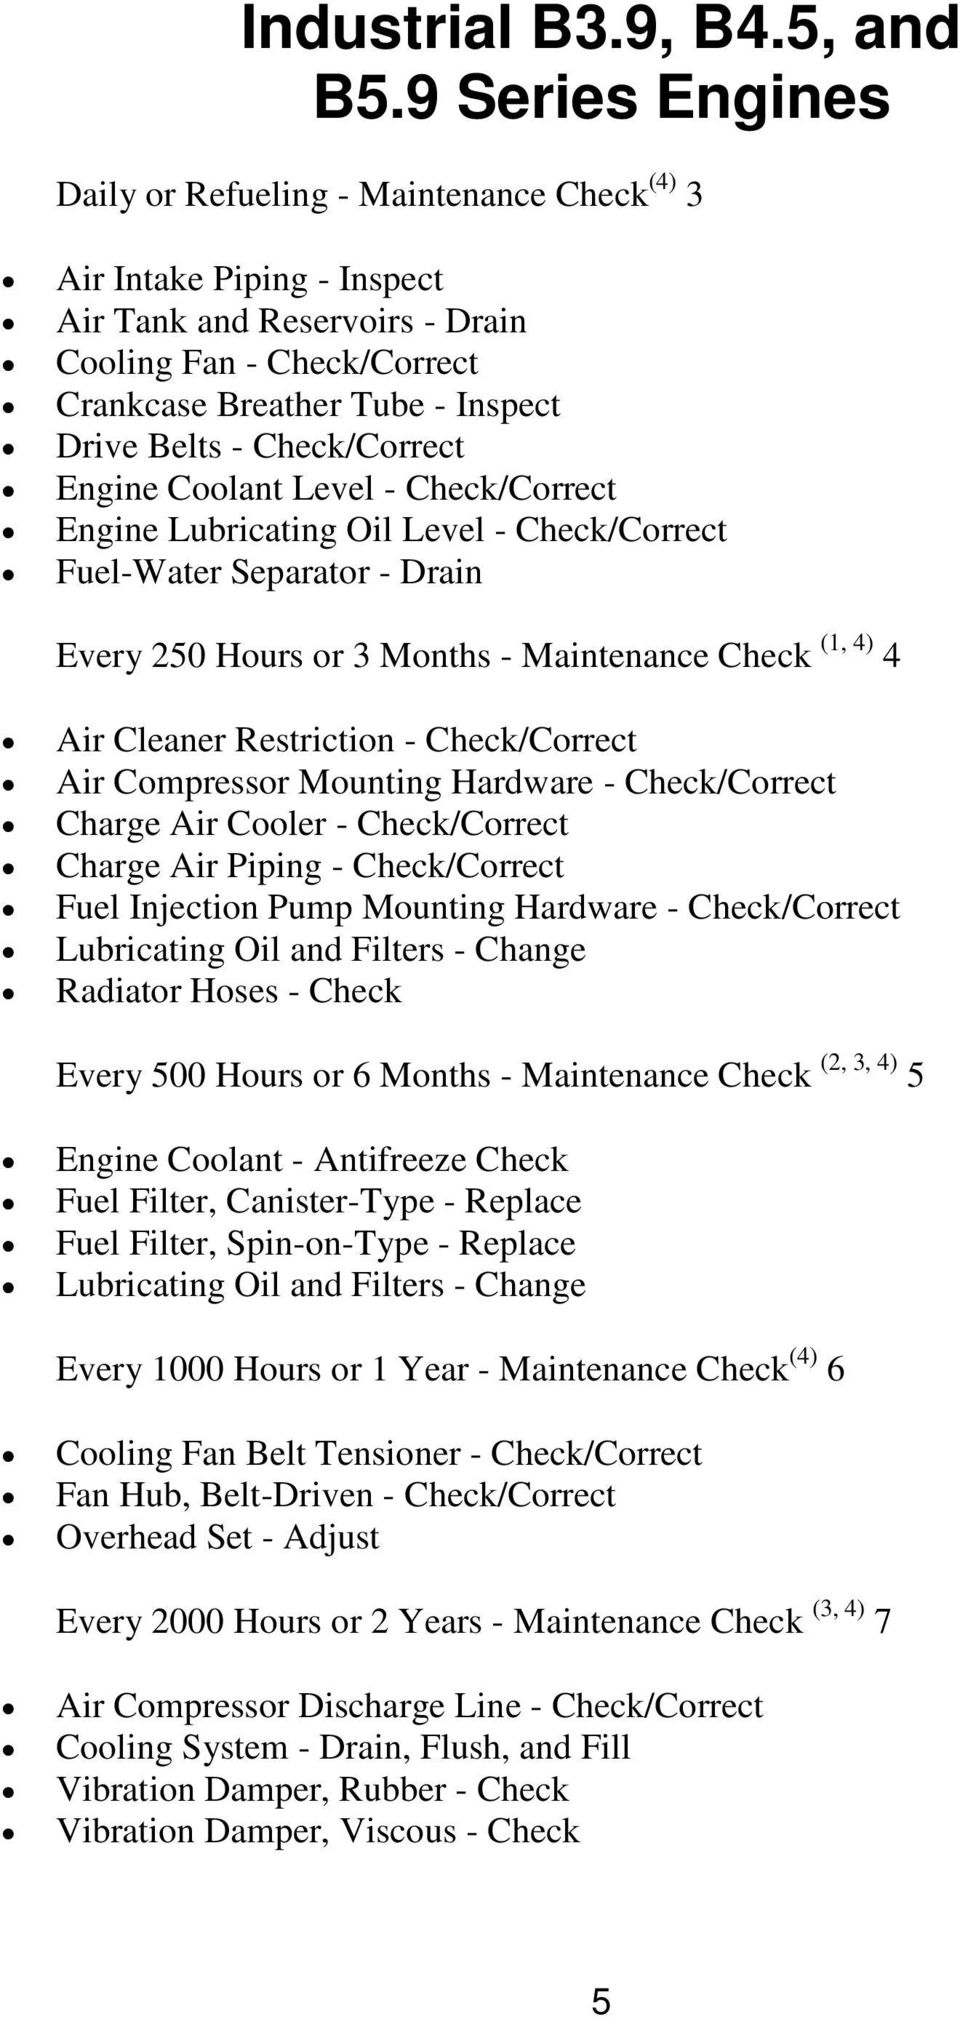 Recommended Maintenance Schedule Pdf Qsb6 7 Wiring Diagram Check Correct Engine Coolant Level Lubricating Oil